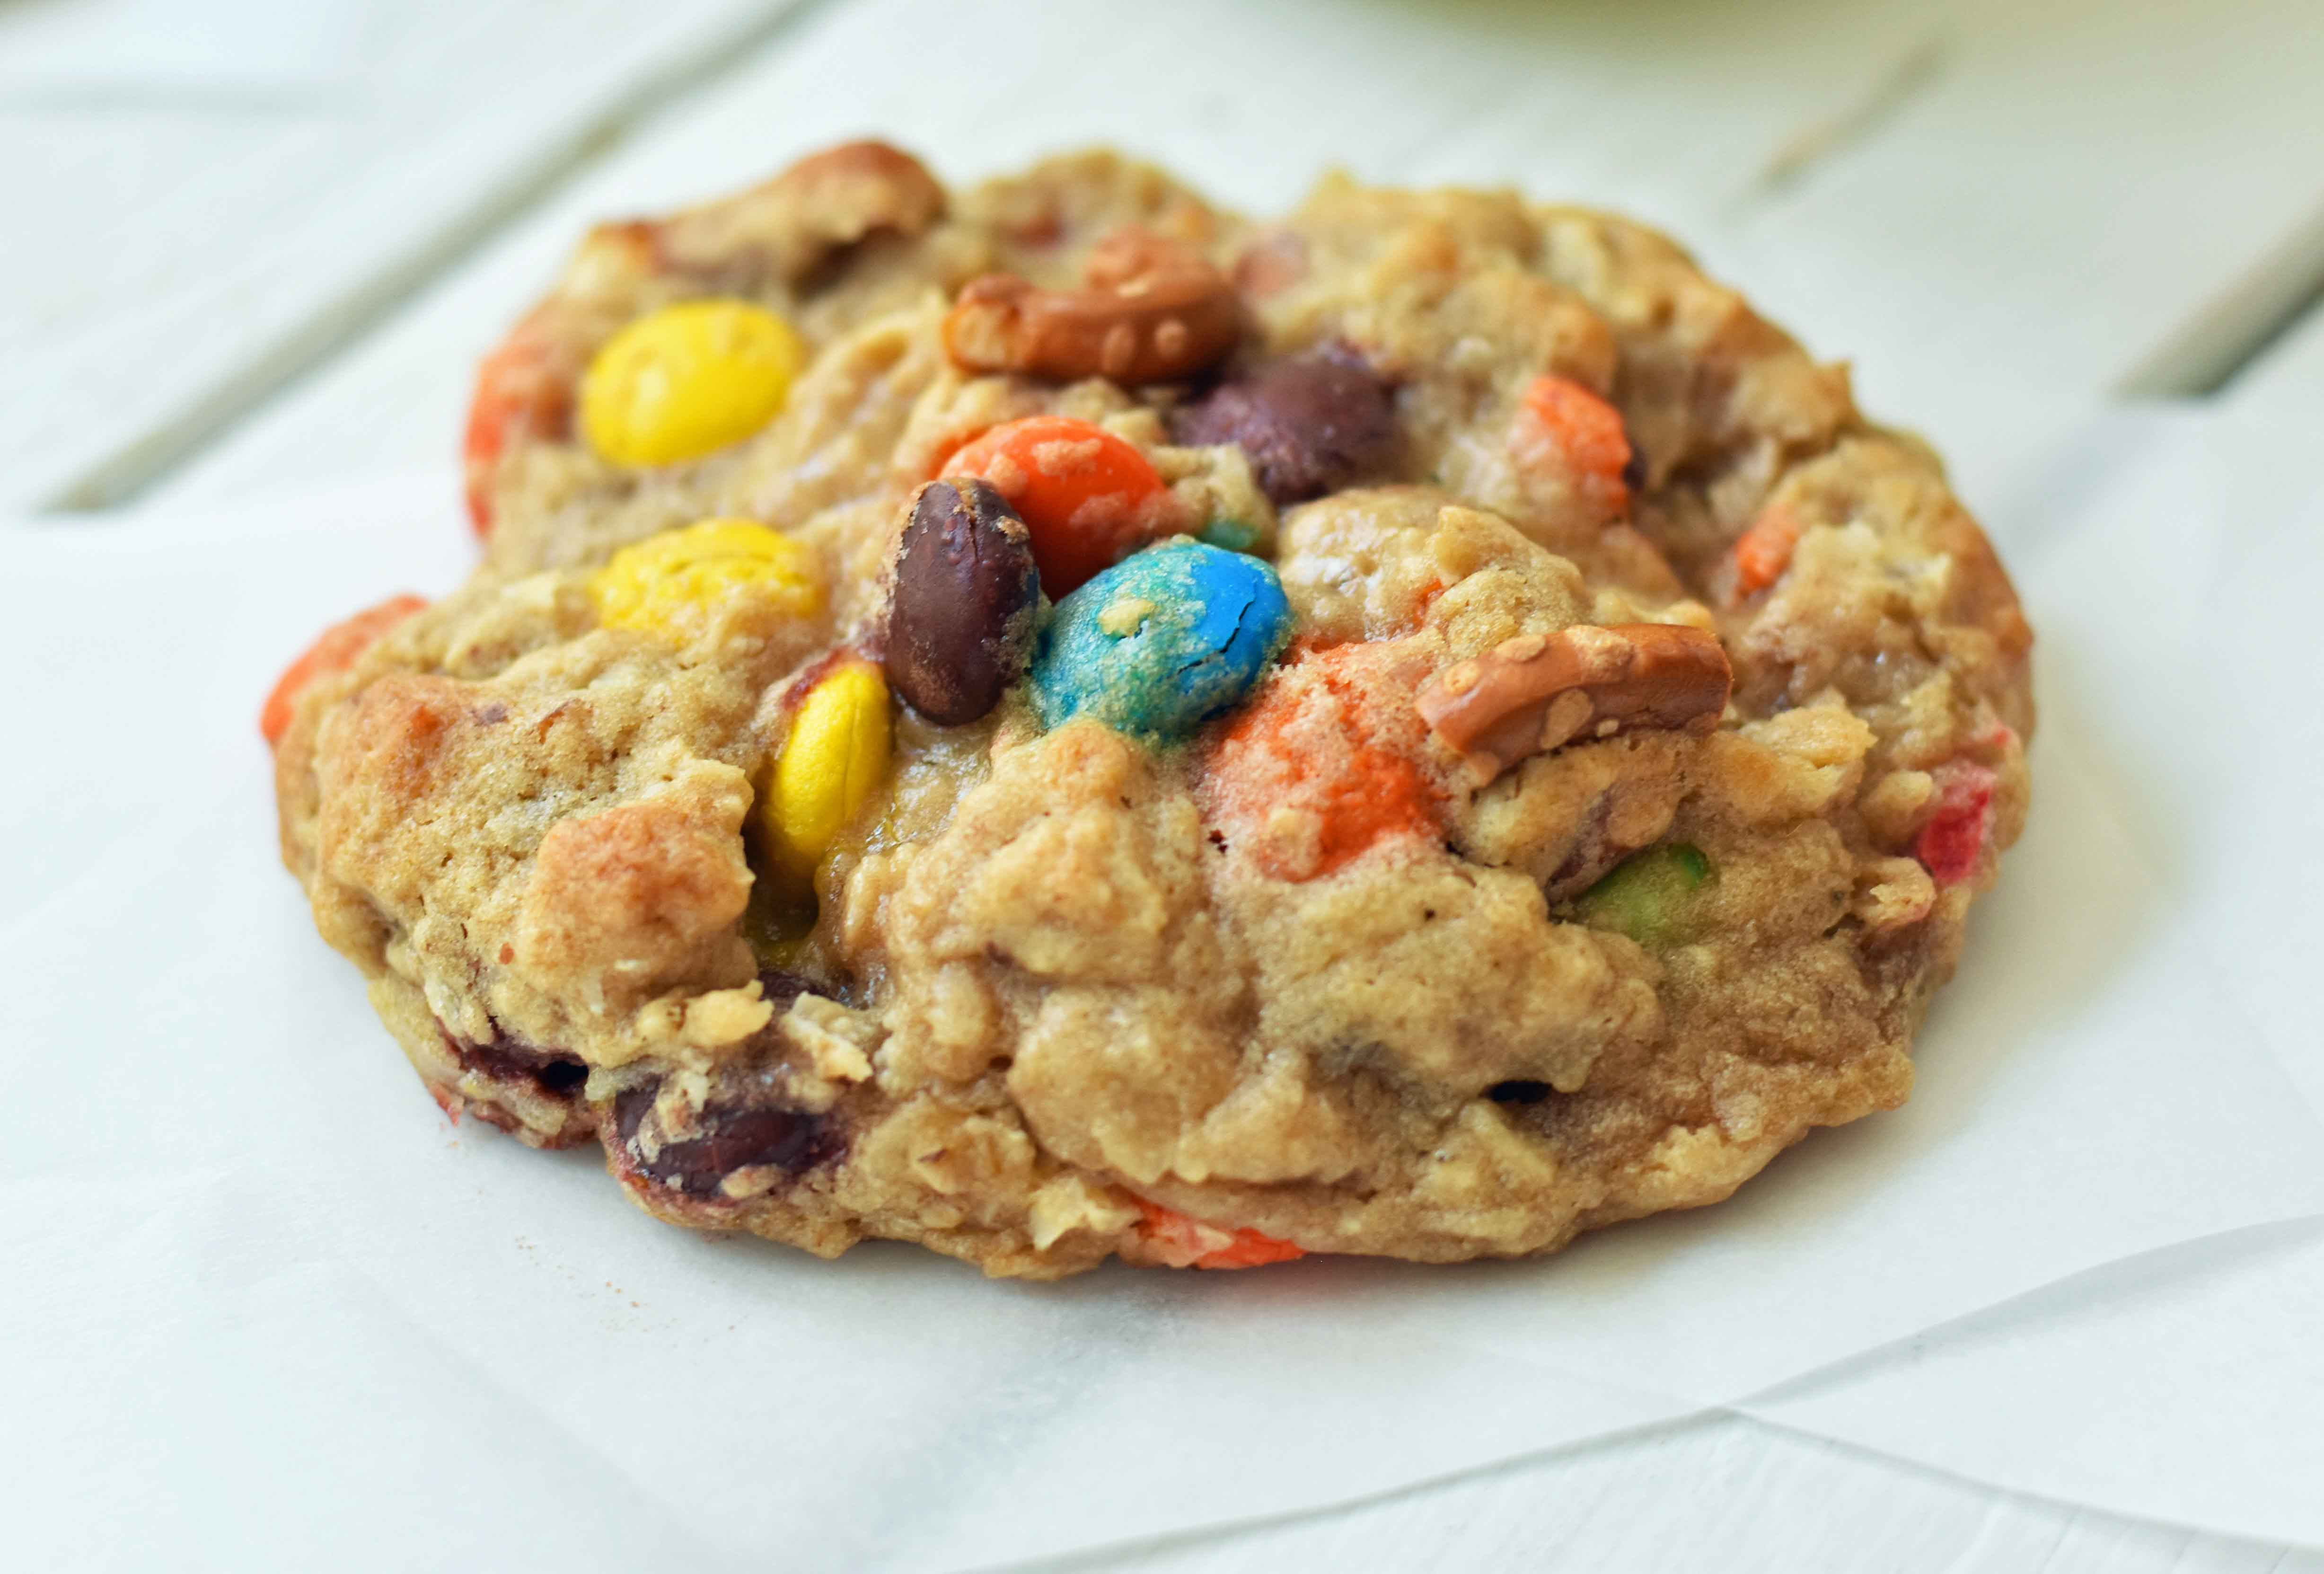 The Overachiever Oatmeal Pretzel M & M Cookie made with a sweet oatmeal cookie dough with oatmeal, shredded coconut, pretzels and M & M's. This Overachiever Cookie is the perfect balance of sweet and salty. www.modernhoney.com